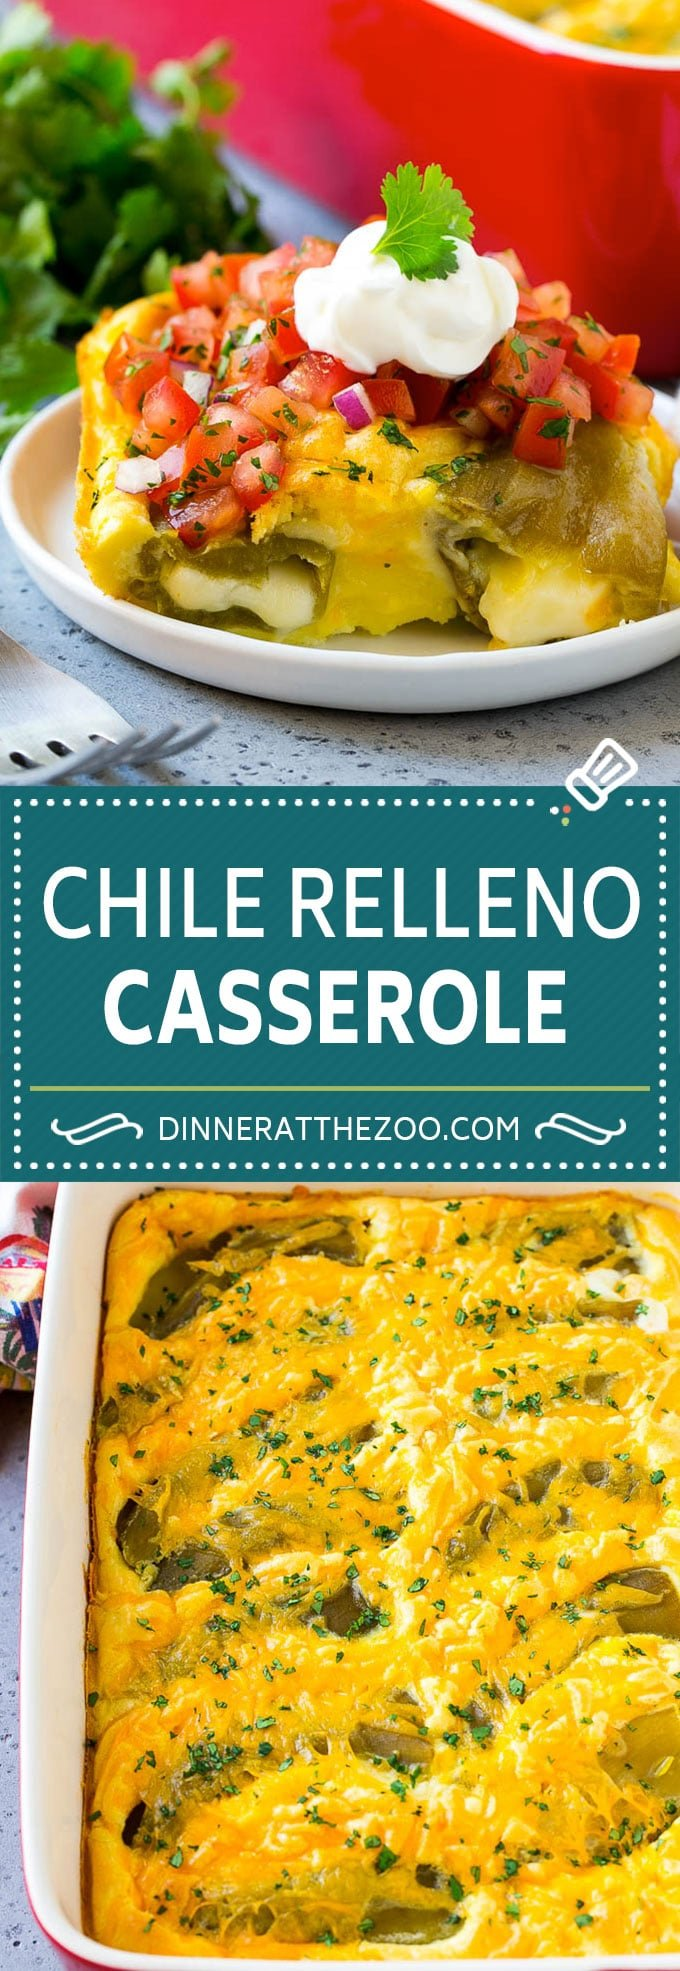 Chile Relleno Casserole Recipe | Baked Chile Rellenos | Mexican Casserole #casserole #chiles #mexican #cheese #dinner #dinneratthezoo